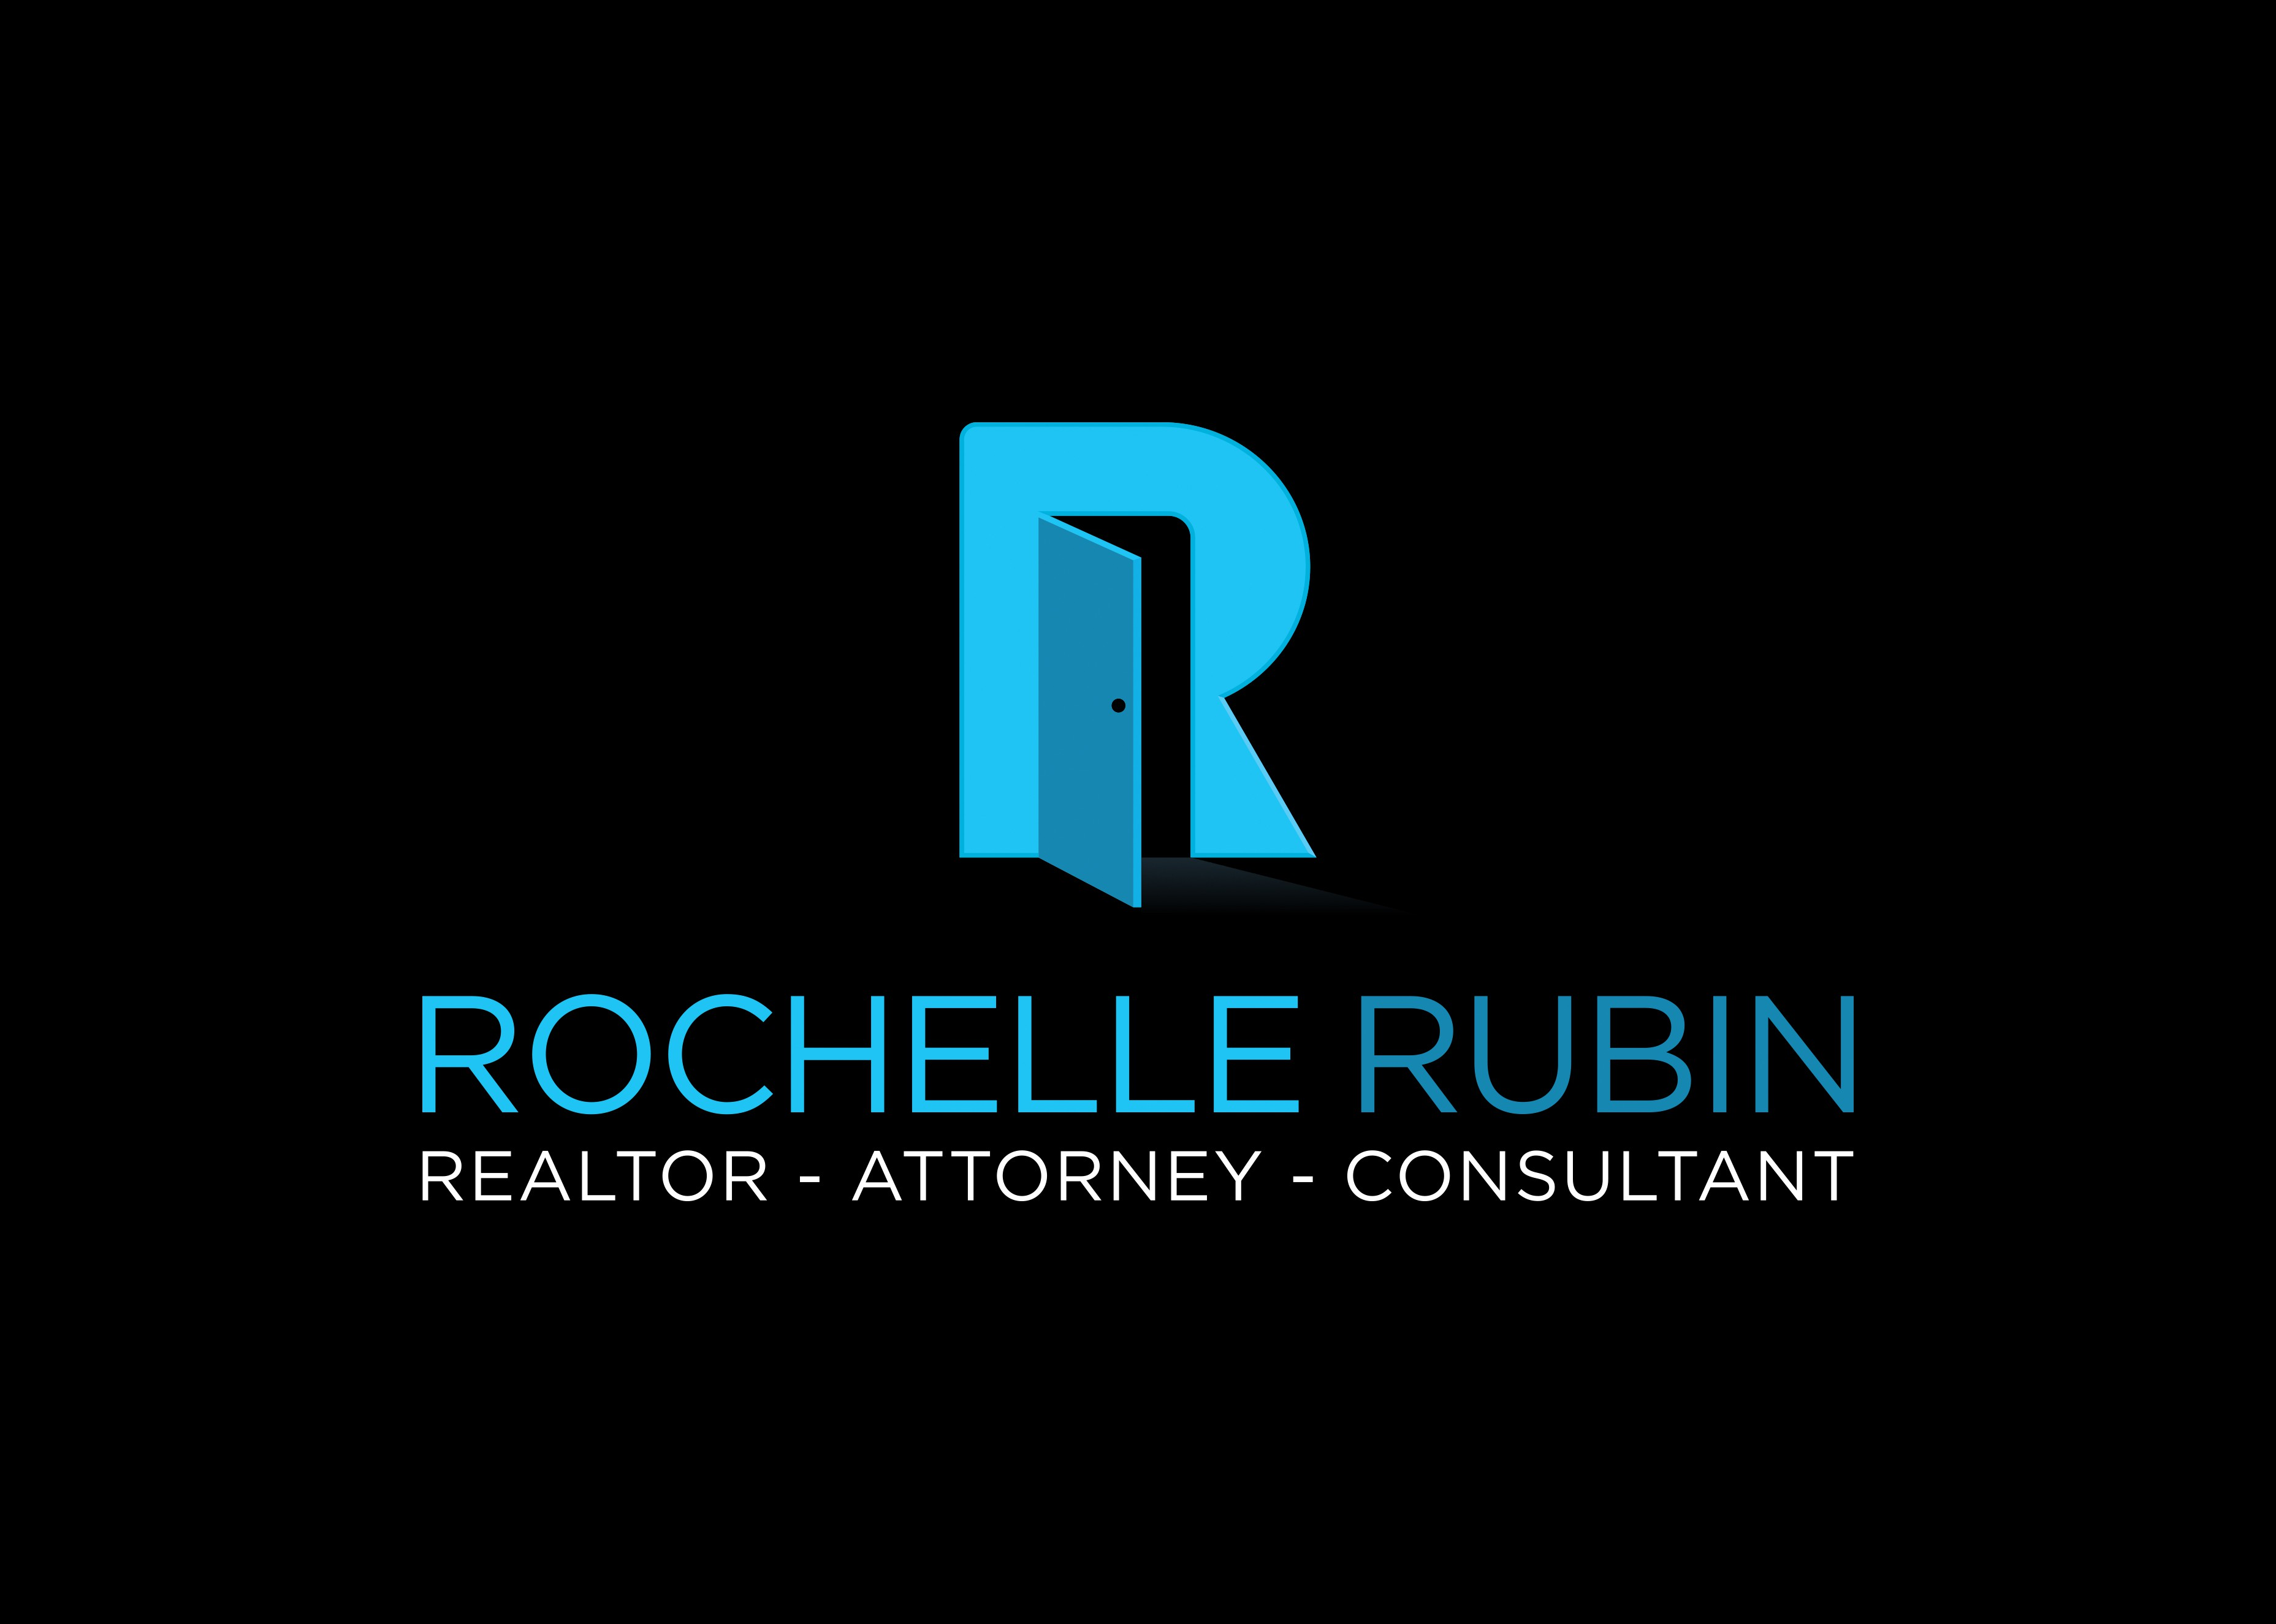 Design Eye-Catching ORIGINAL Logo for a Realtor and Attorney -- Something new and different.